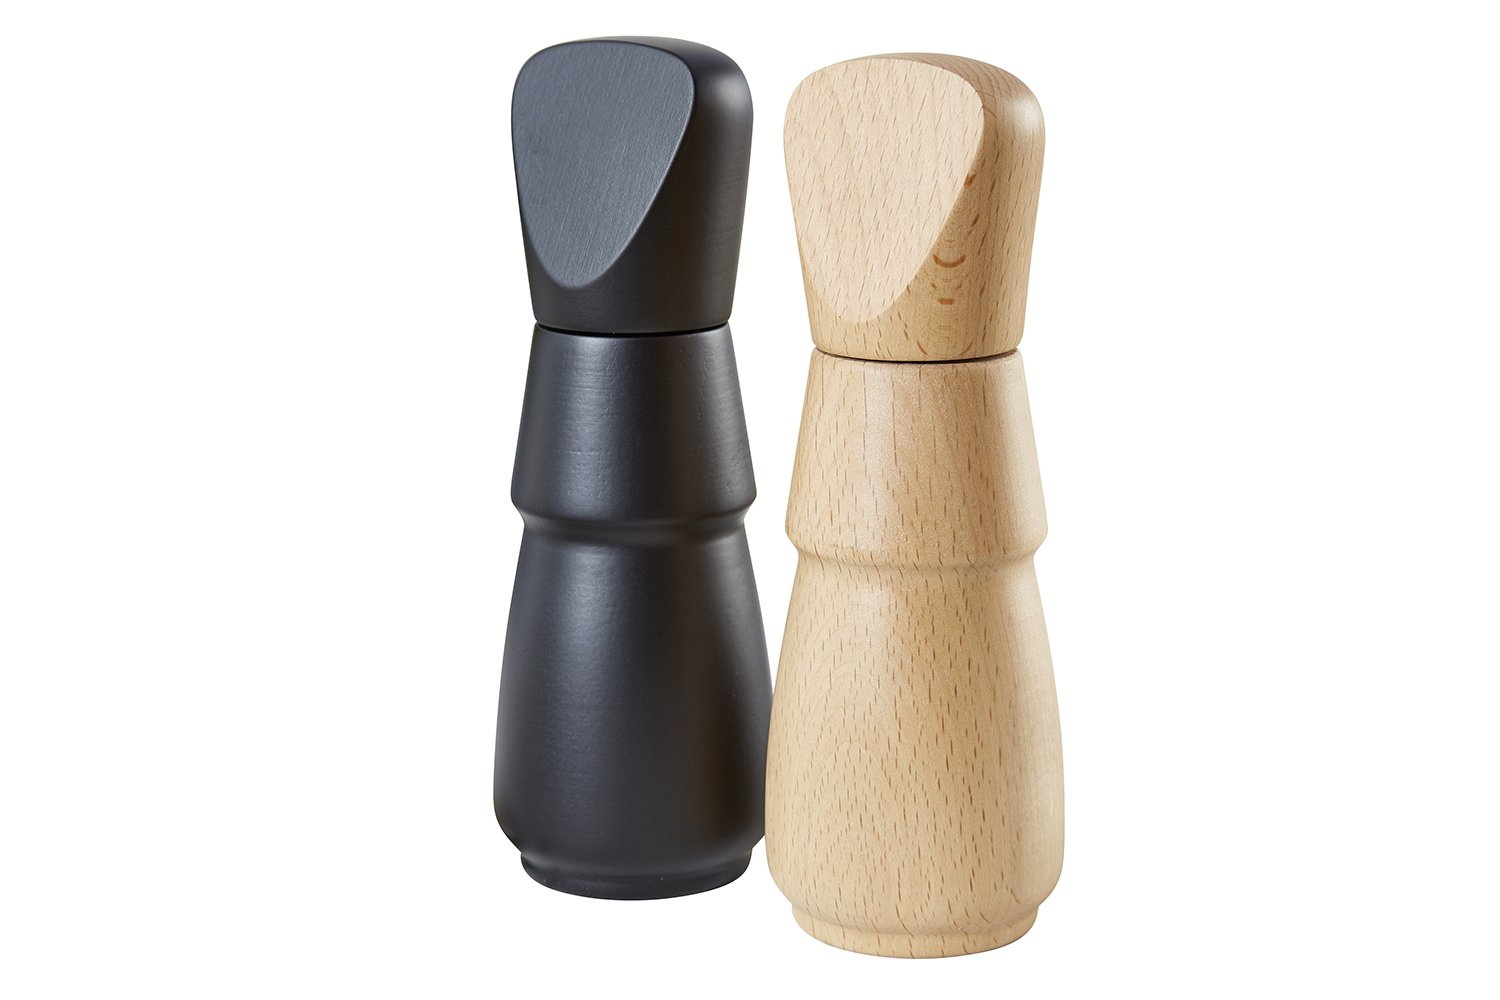 Buonostar 2-piece wooden spice mill with ceramic grinder. Mills are in 2 colors black for pepper and light for salt. Can be used in many different ways: grinds salt, pepper, spices, dried herbs. ST-AR GmbH & Co. KG